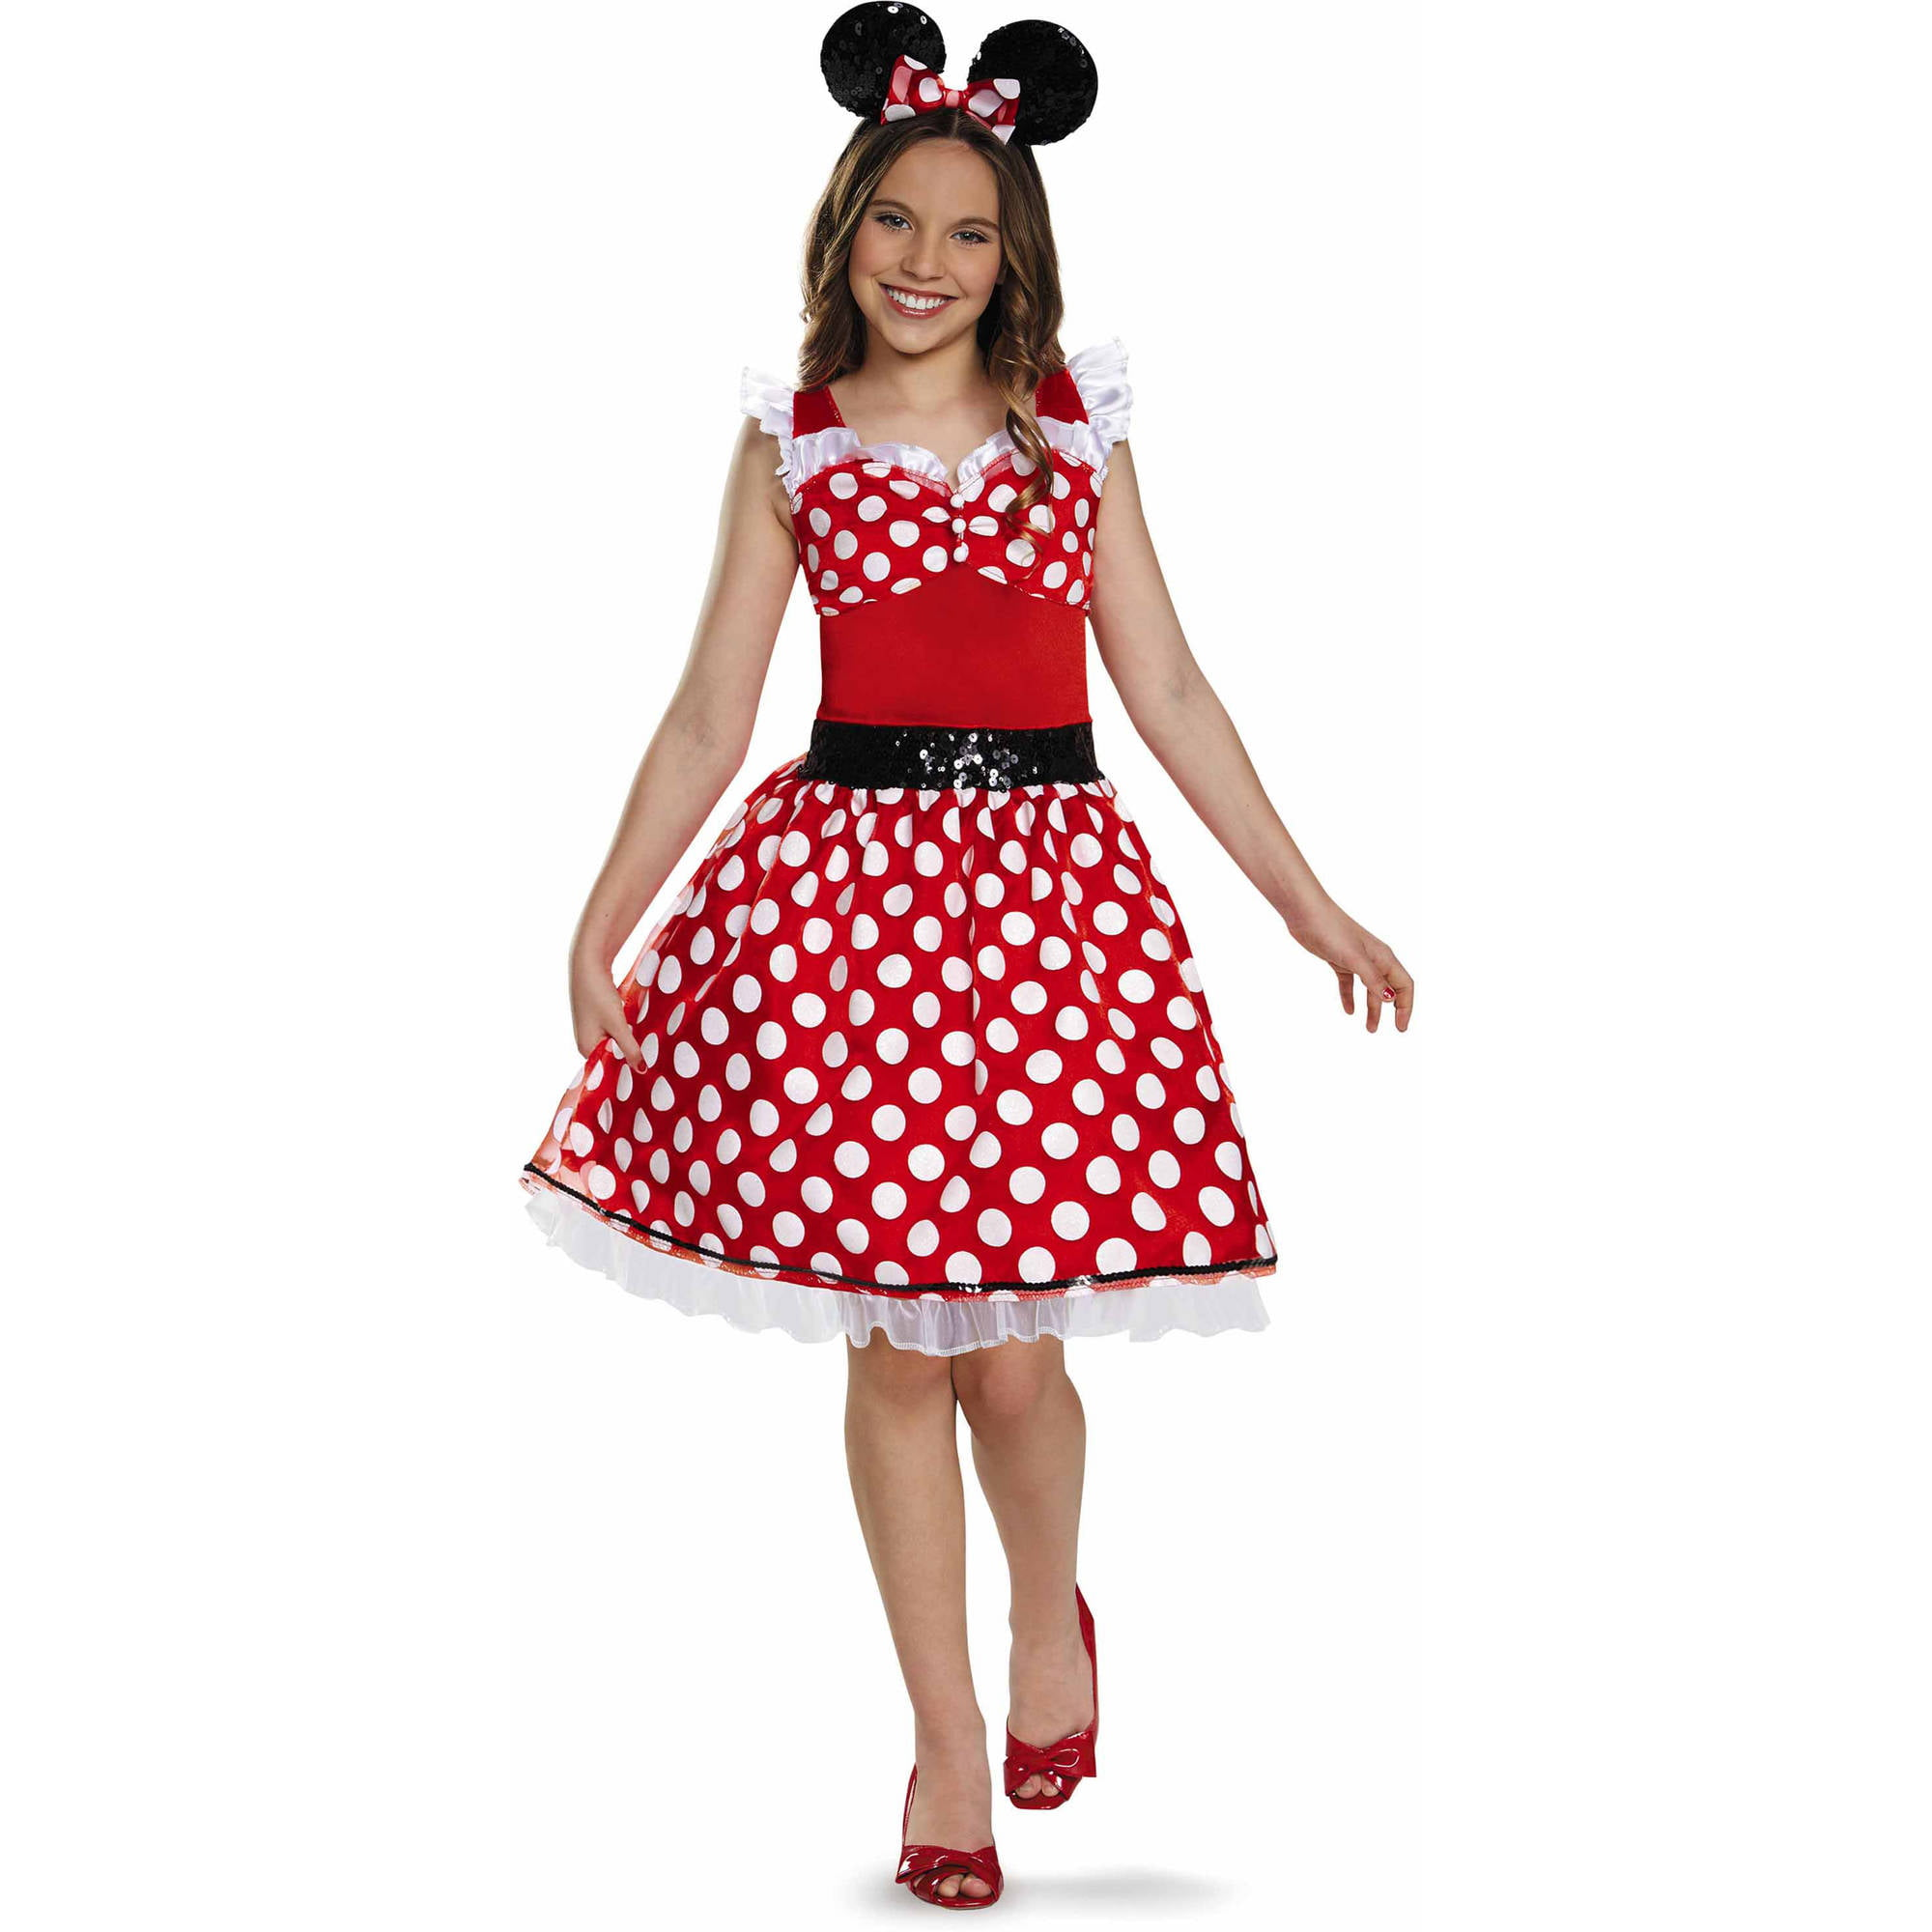 sc 1 st  Walmart & Red Minnie Mouse Tween Halloween Costume - Walmart.com